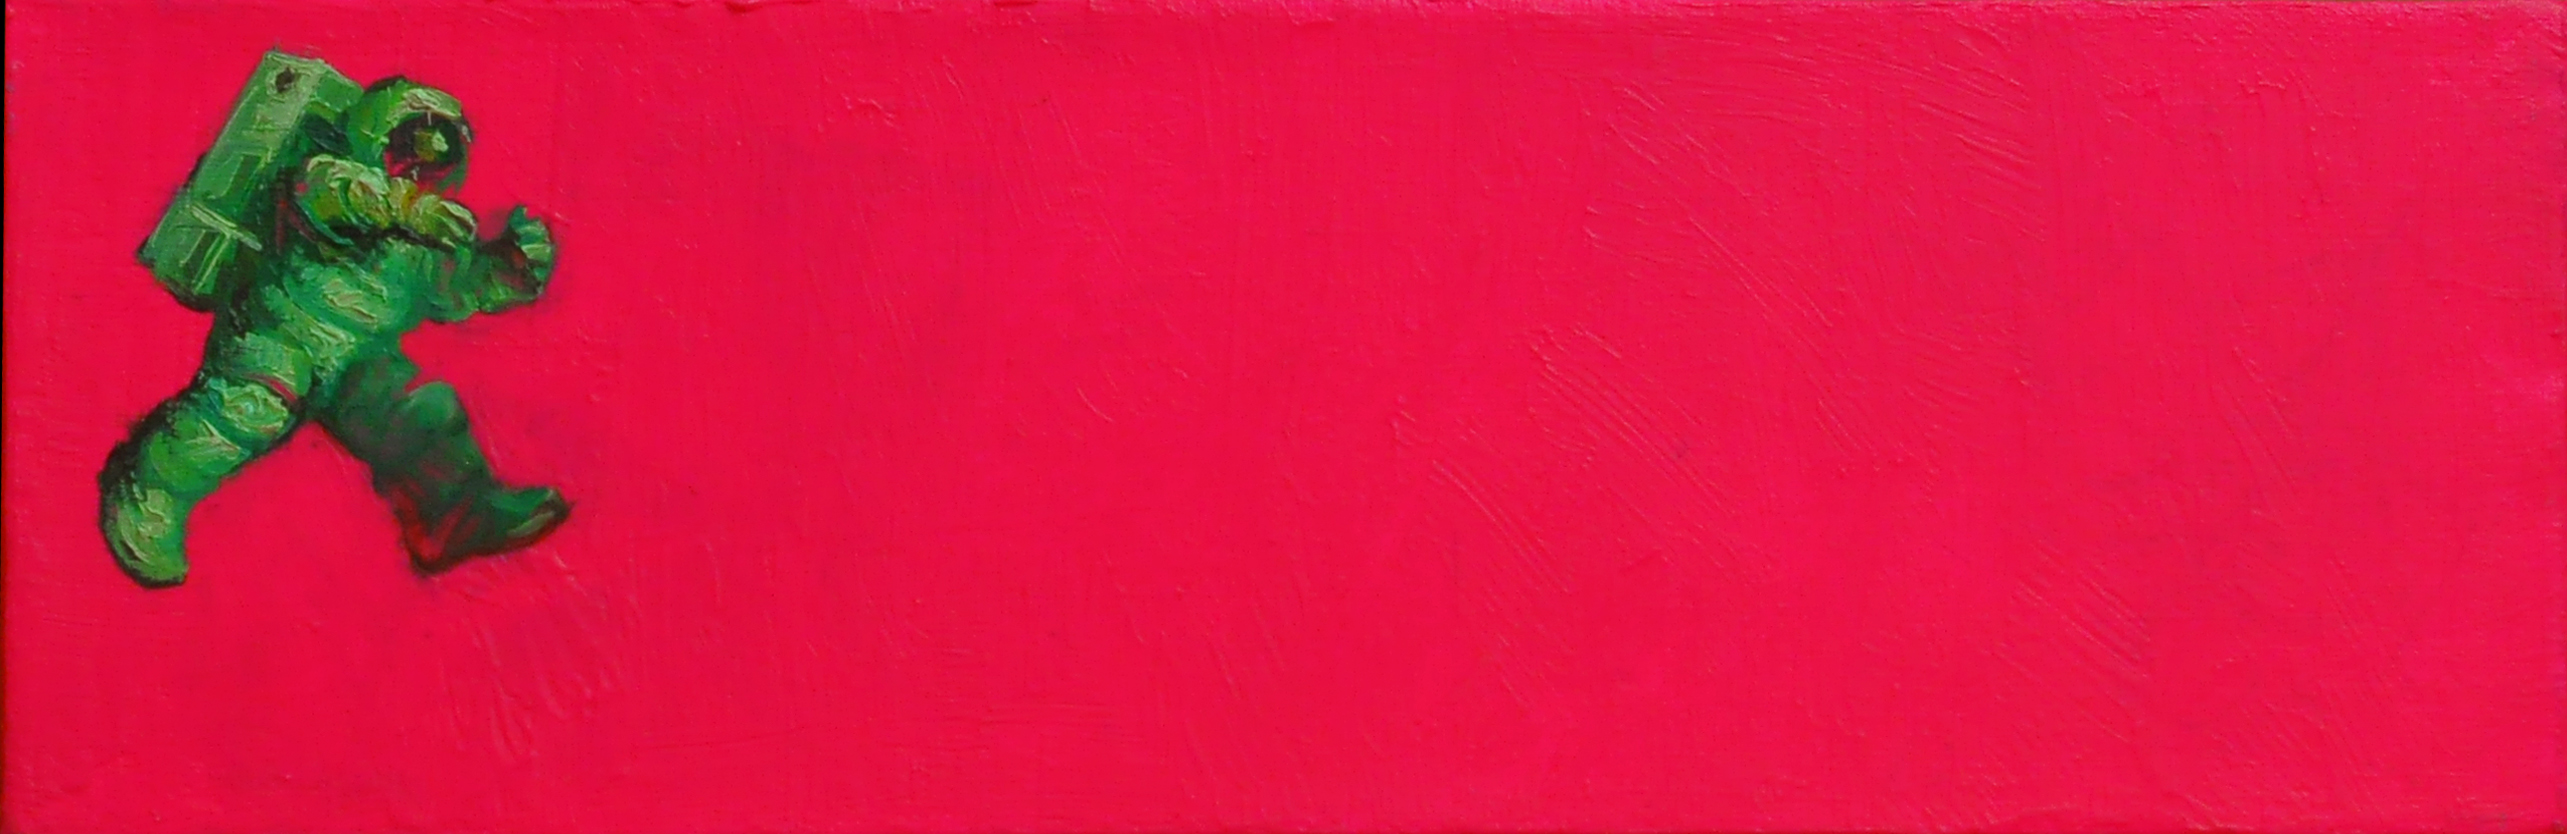 2014,One Giant Leap_12 x 4, Oil on Canvas.jpg